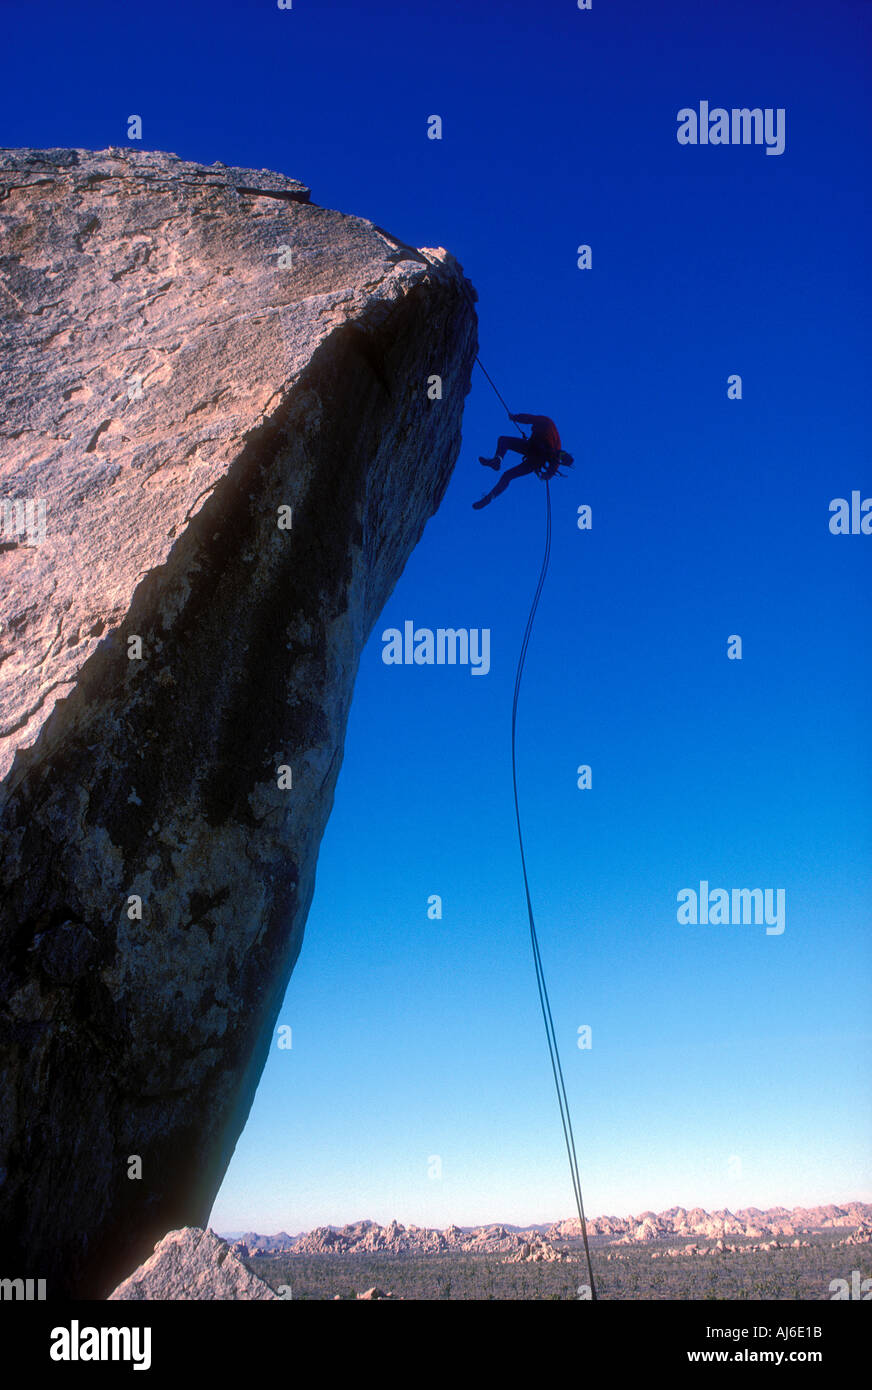 Rock climber rappeling off of large boulder in Joshua Tree National Monument California Model Released Image - Stock Image